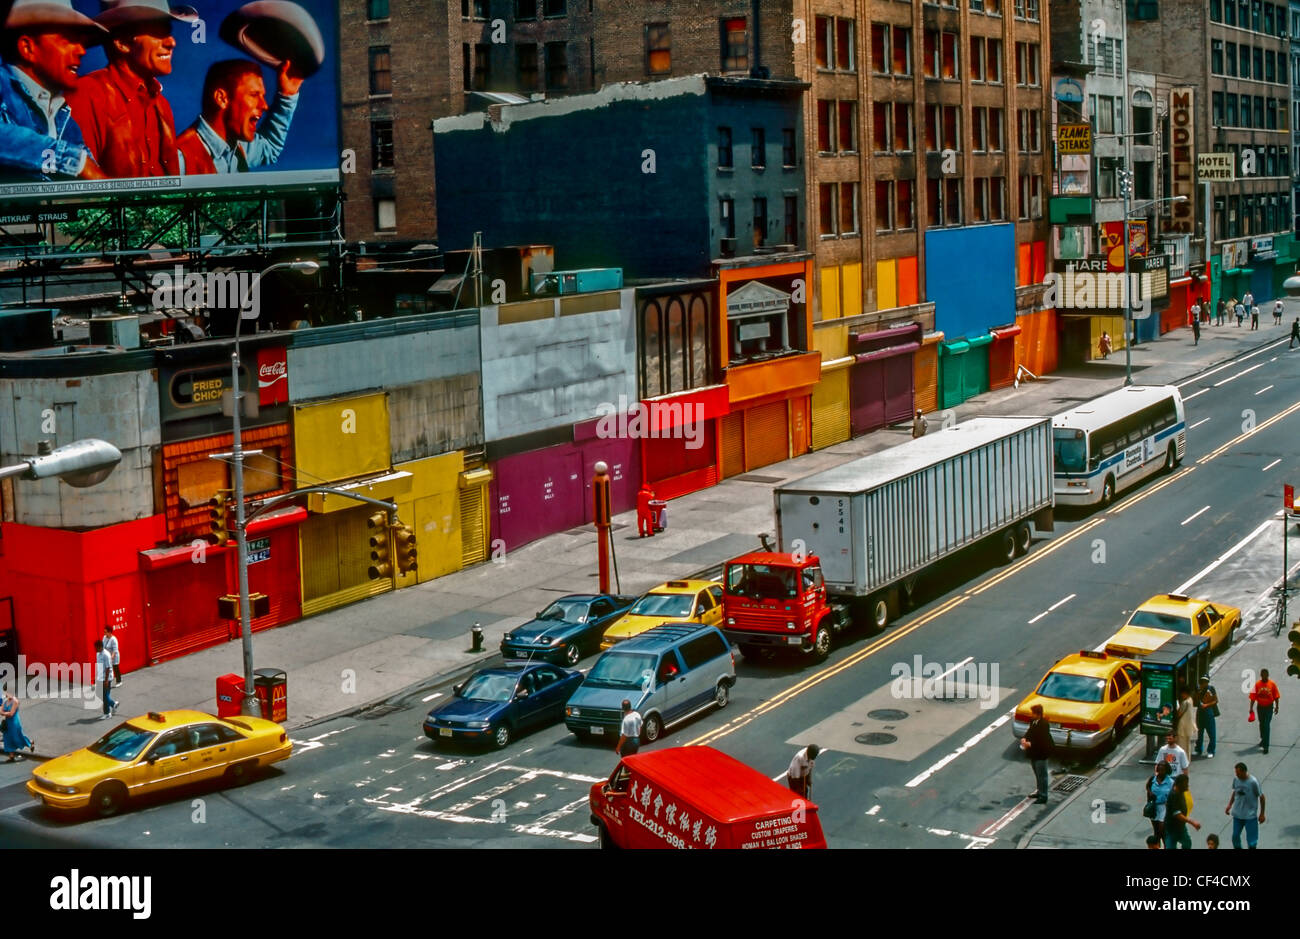 New York, NY , U.S.A. - High Angle, Buildings on West 42nd Street, Traffic on Street - Stock Image